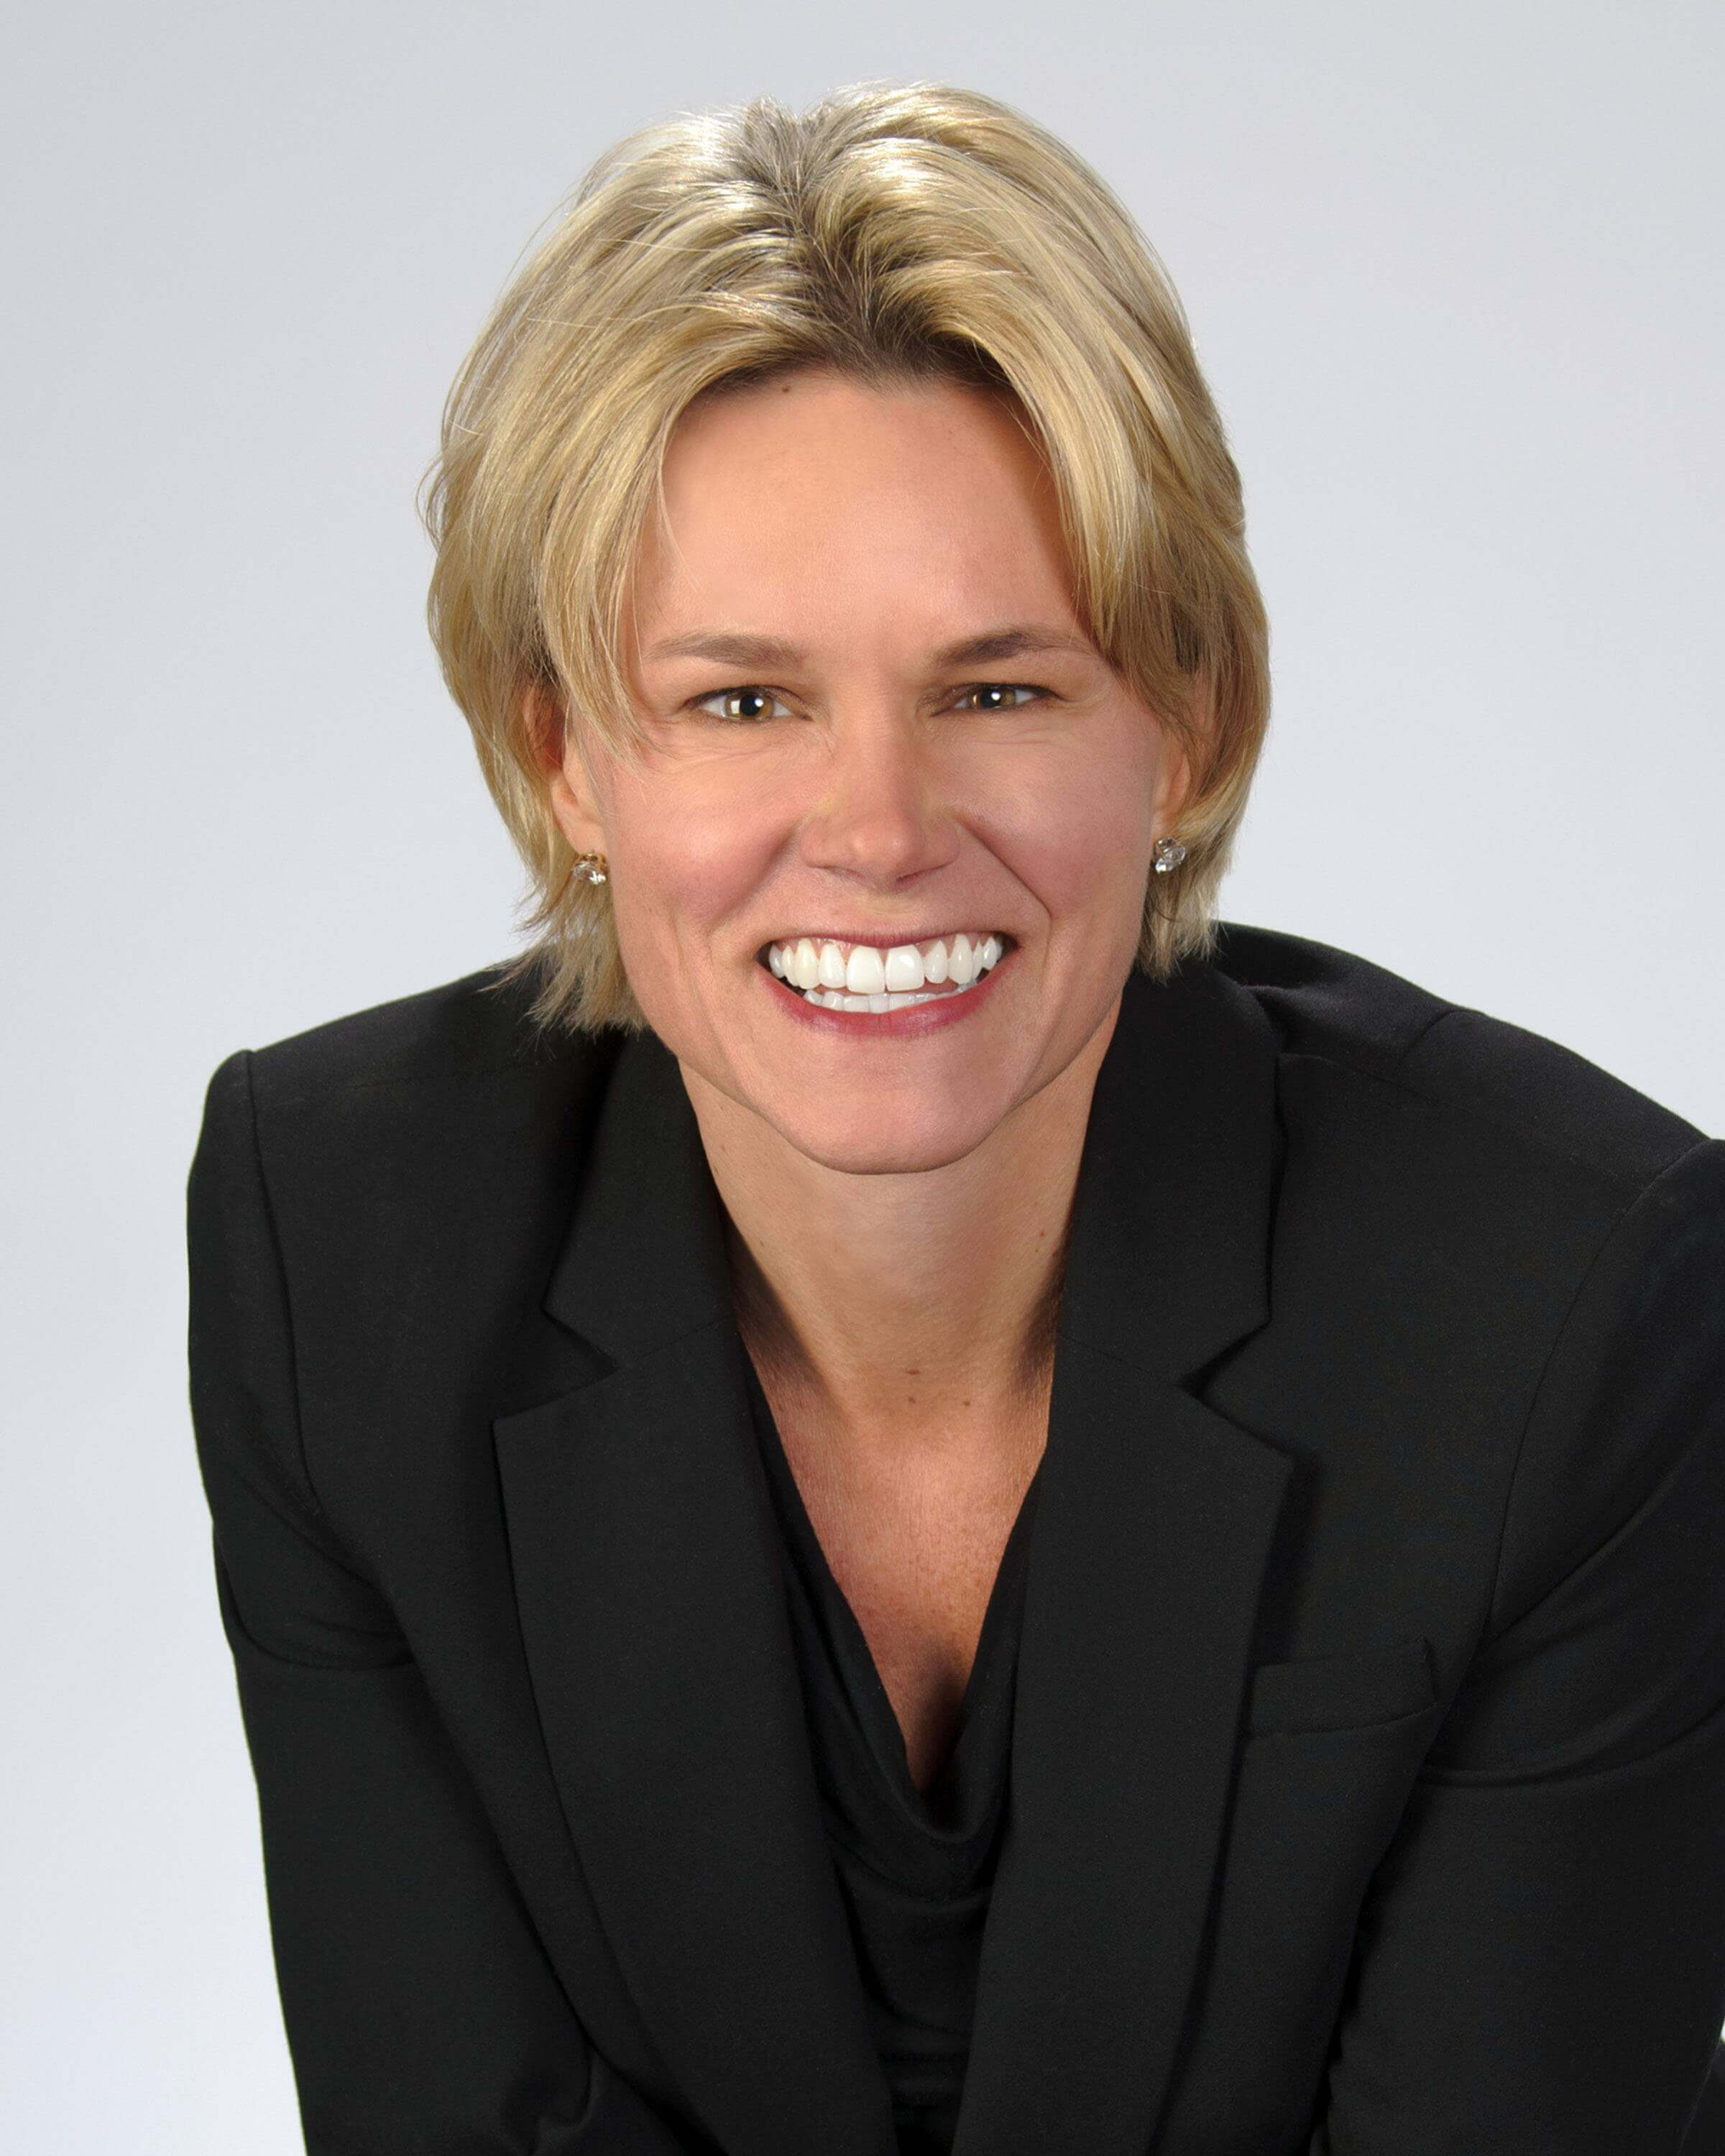 Molly Fletcher, HR Magazine: Working Without Fear